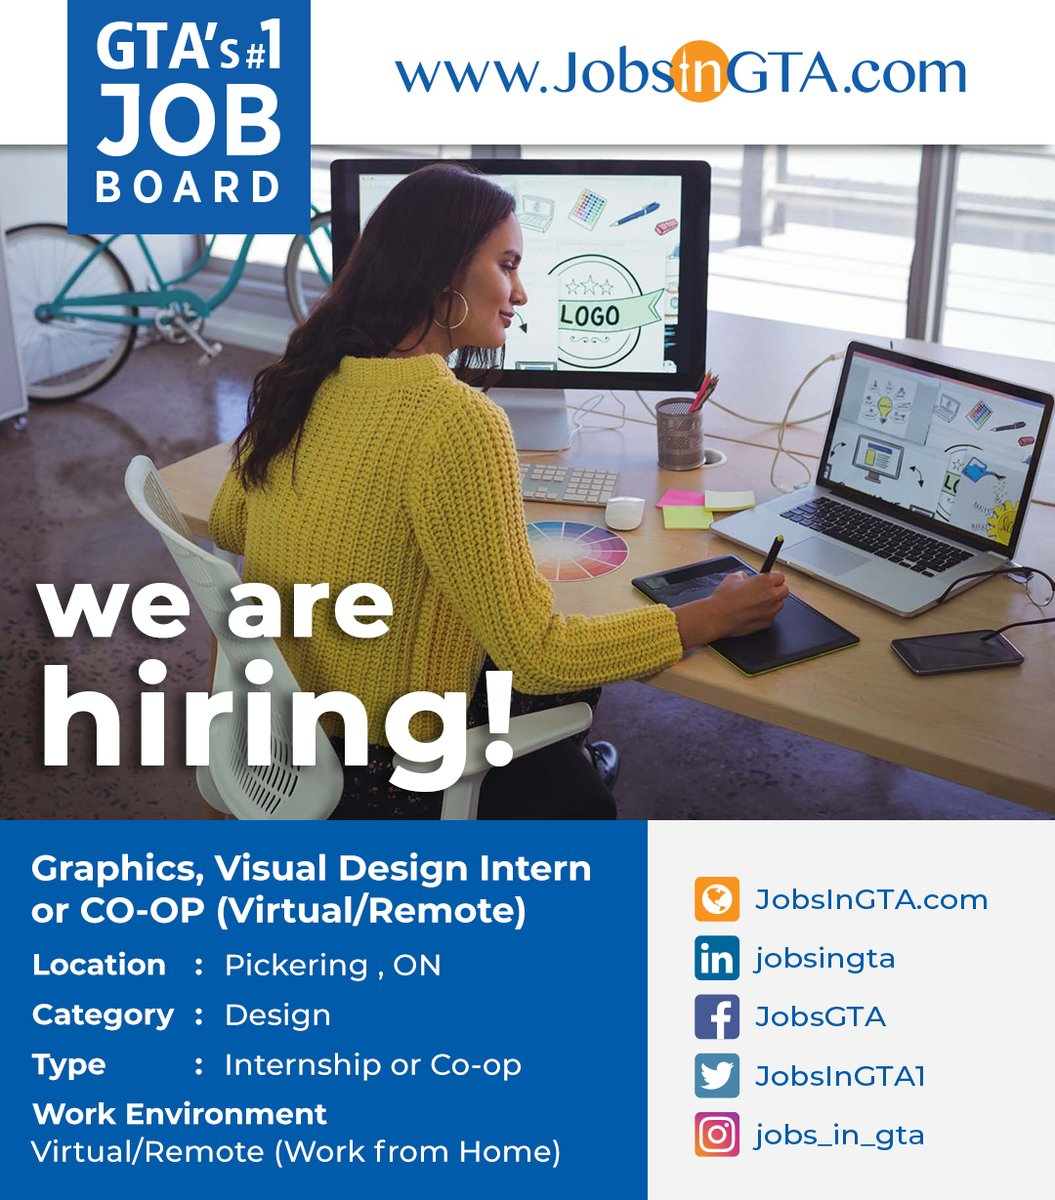 We're hiring ! We're looking for Graphics, Visual Design Intern or CO-OP (Virtual/Remote)  Apply: https://t.co/9WPiZkzEg3  #JobsInGTA #WorkFromHome #RemoteJobs #VirtualWork #DreamJob  #VisualDesign #DesignJobs #GraphicsJobs #TorontoJobs #StayHome #StaySafe #MondayMotivation https://t.co/PMdnpXTD6H